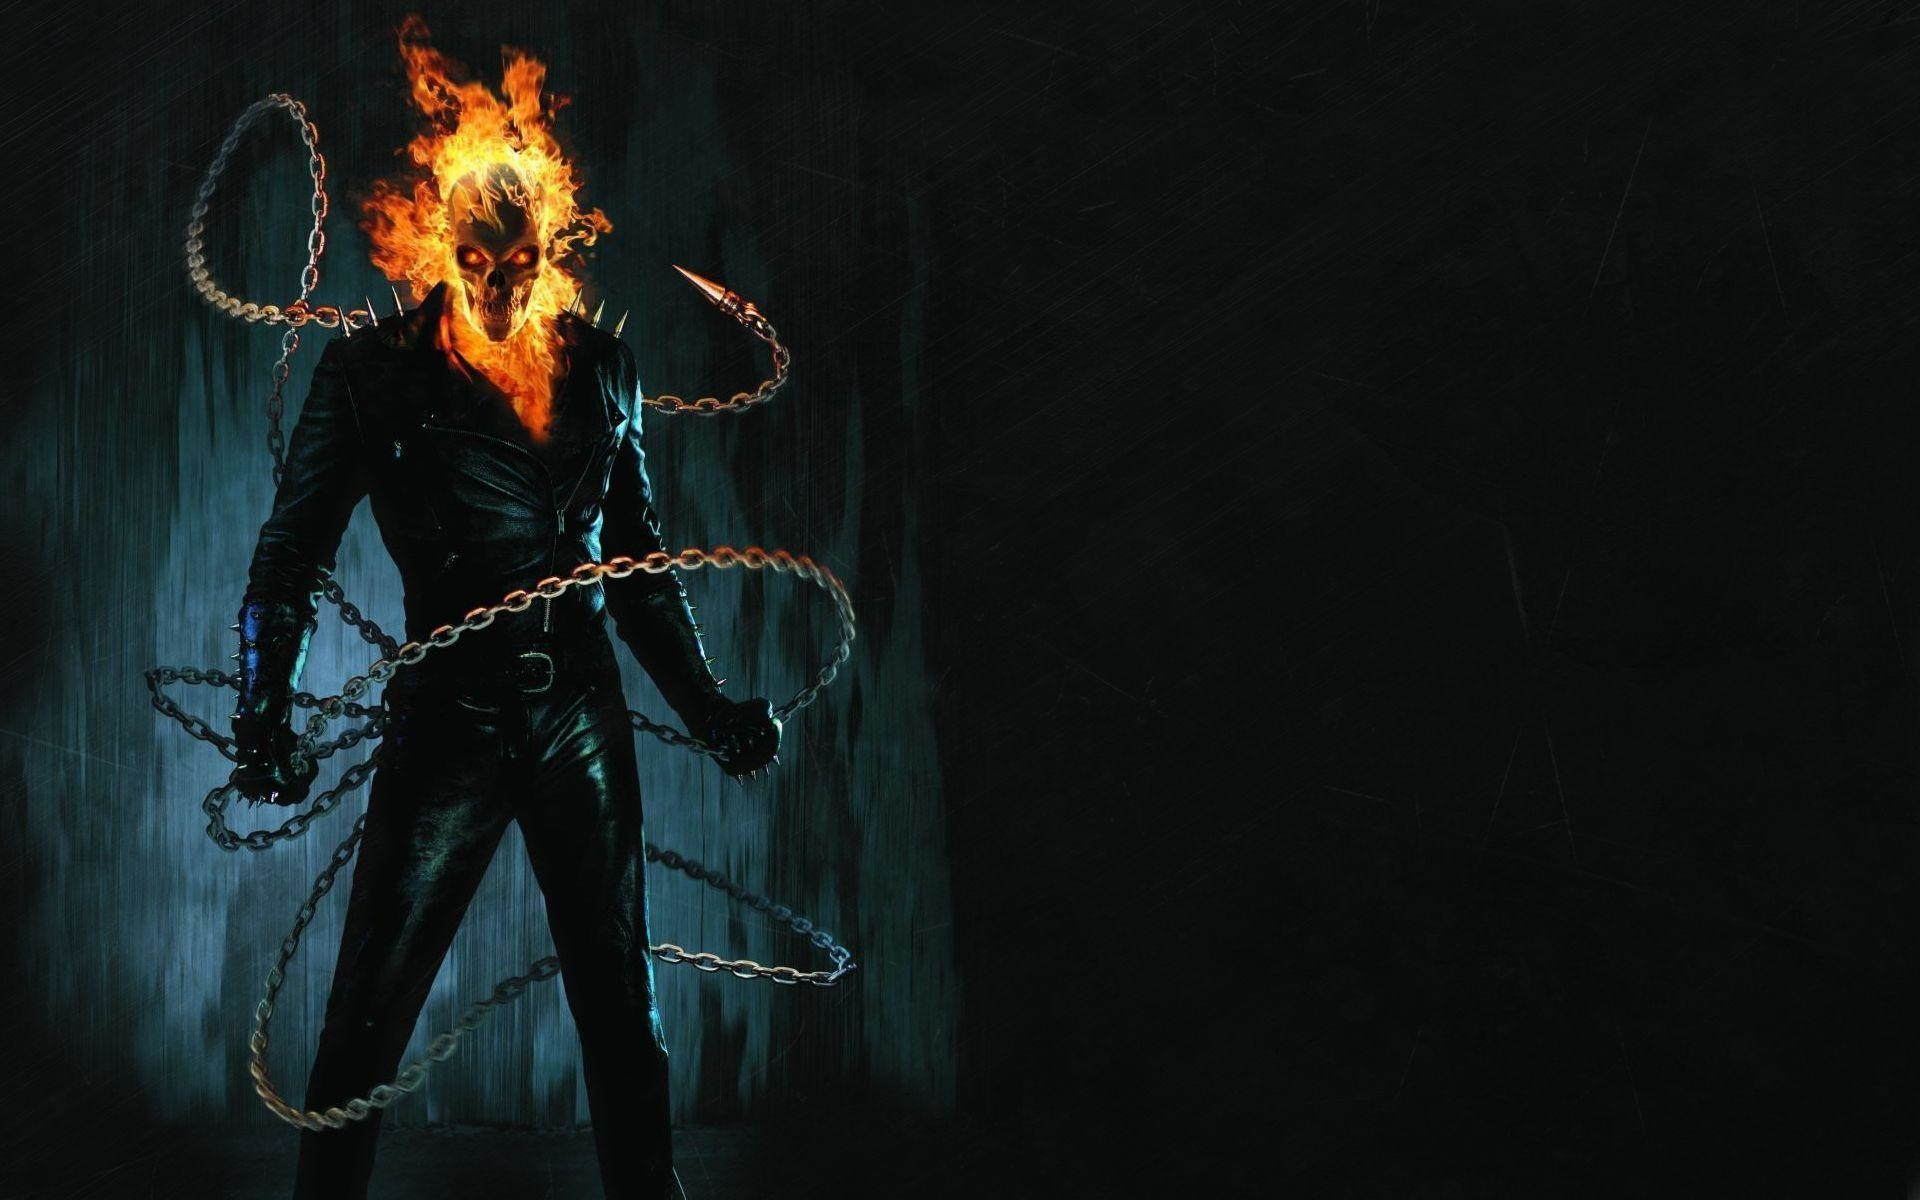 Ghost Rider Wallpaper HD (60+ images)